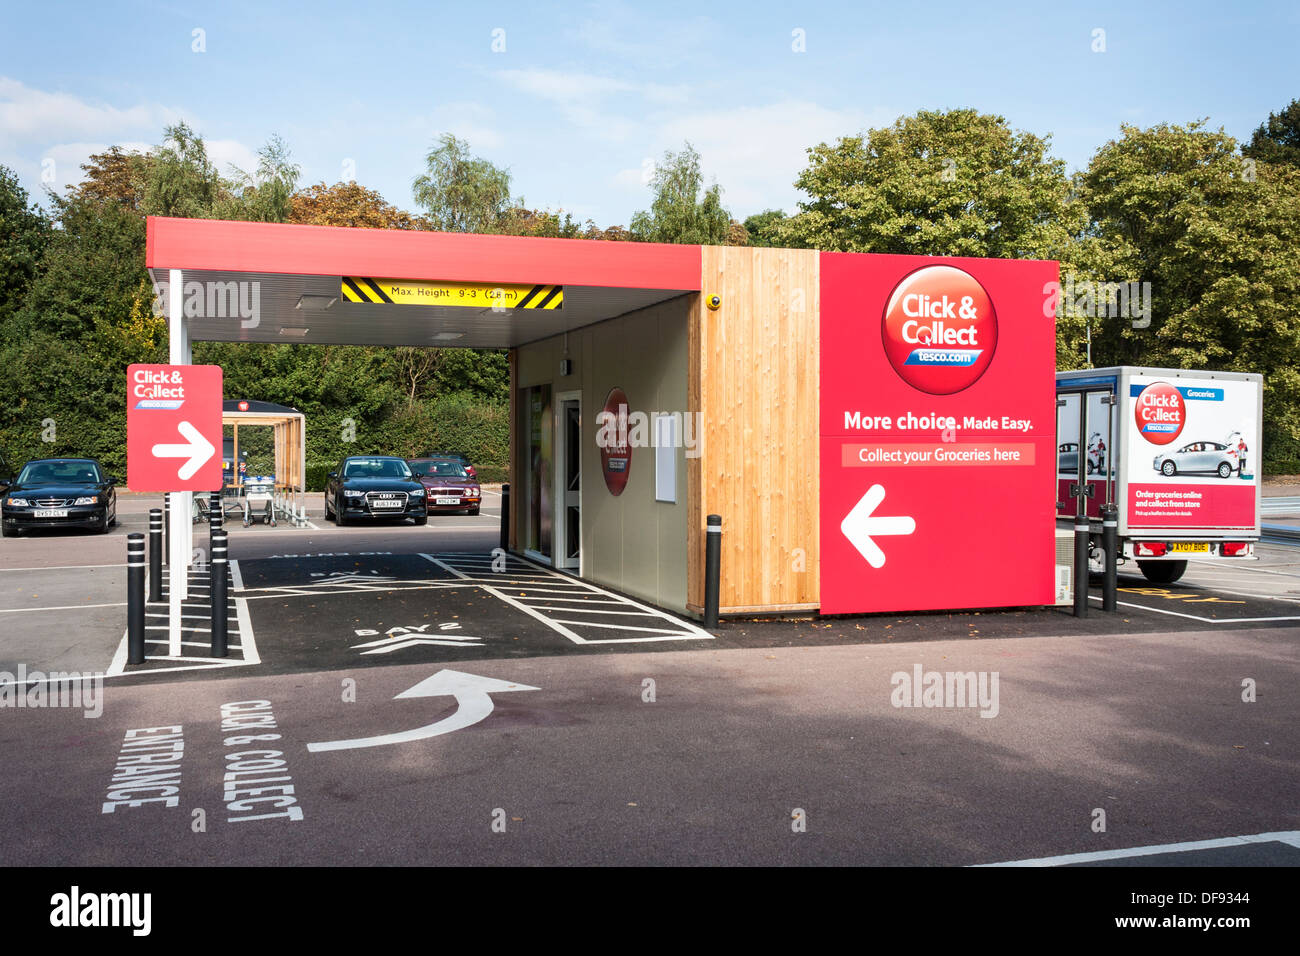 tesco click and collect point in supermarket car park reading stock photo royalty free image. Black Bedroom Furniture Sets. Home Design Ideas